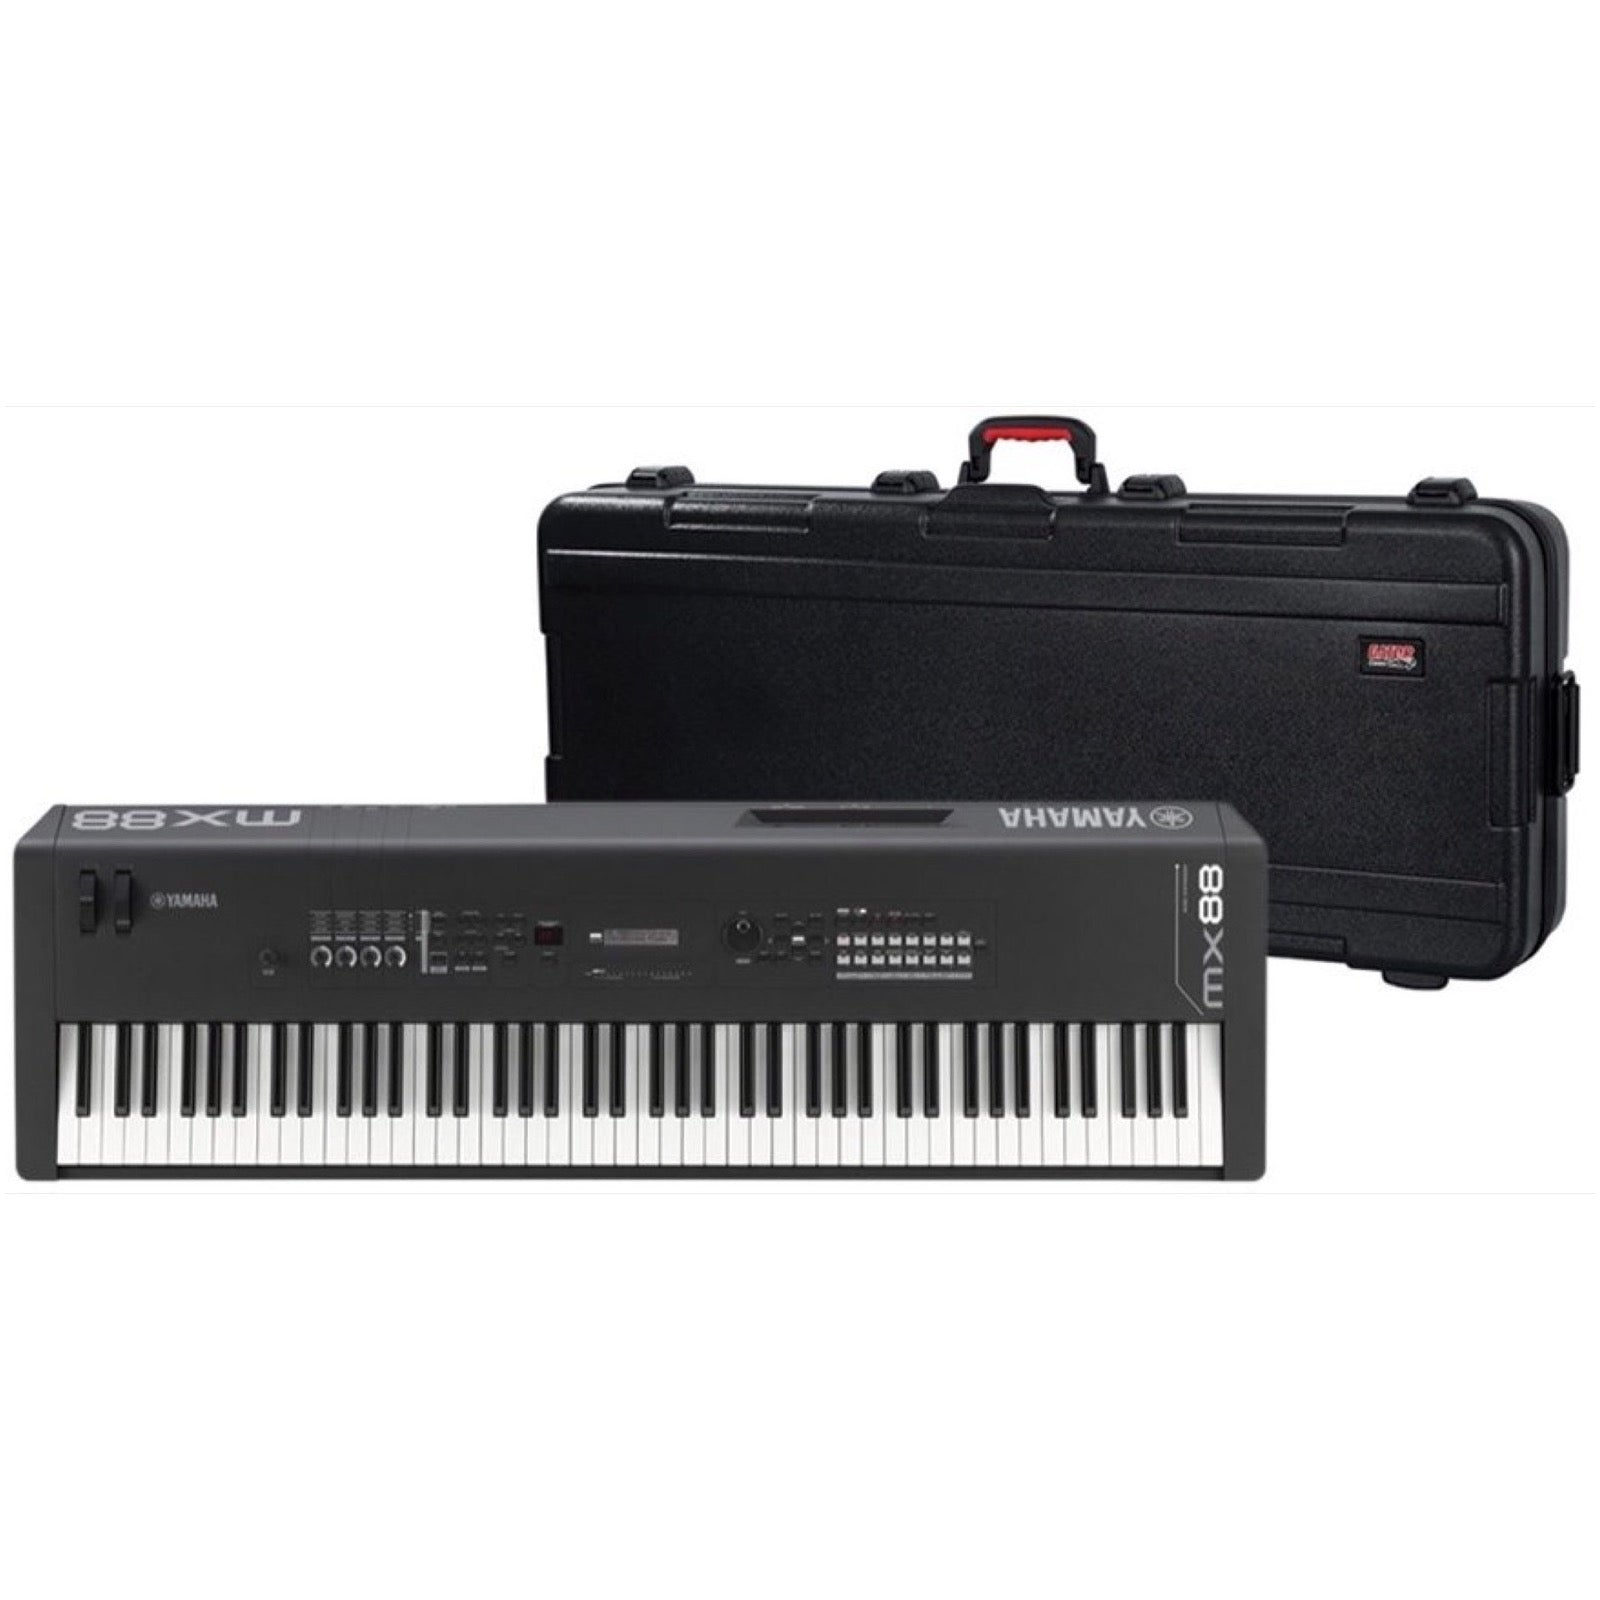 Yamaha MX88 Keyboard Synthesizer, 88-Key, Black, with Case